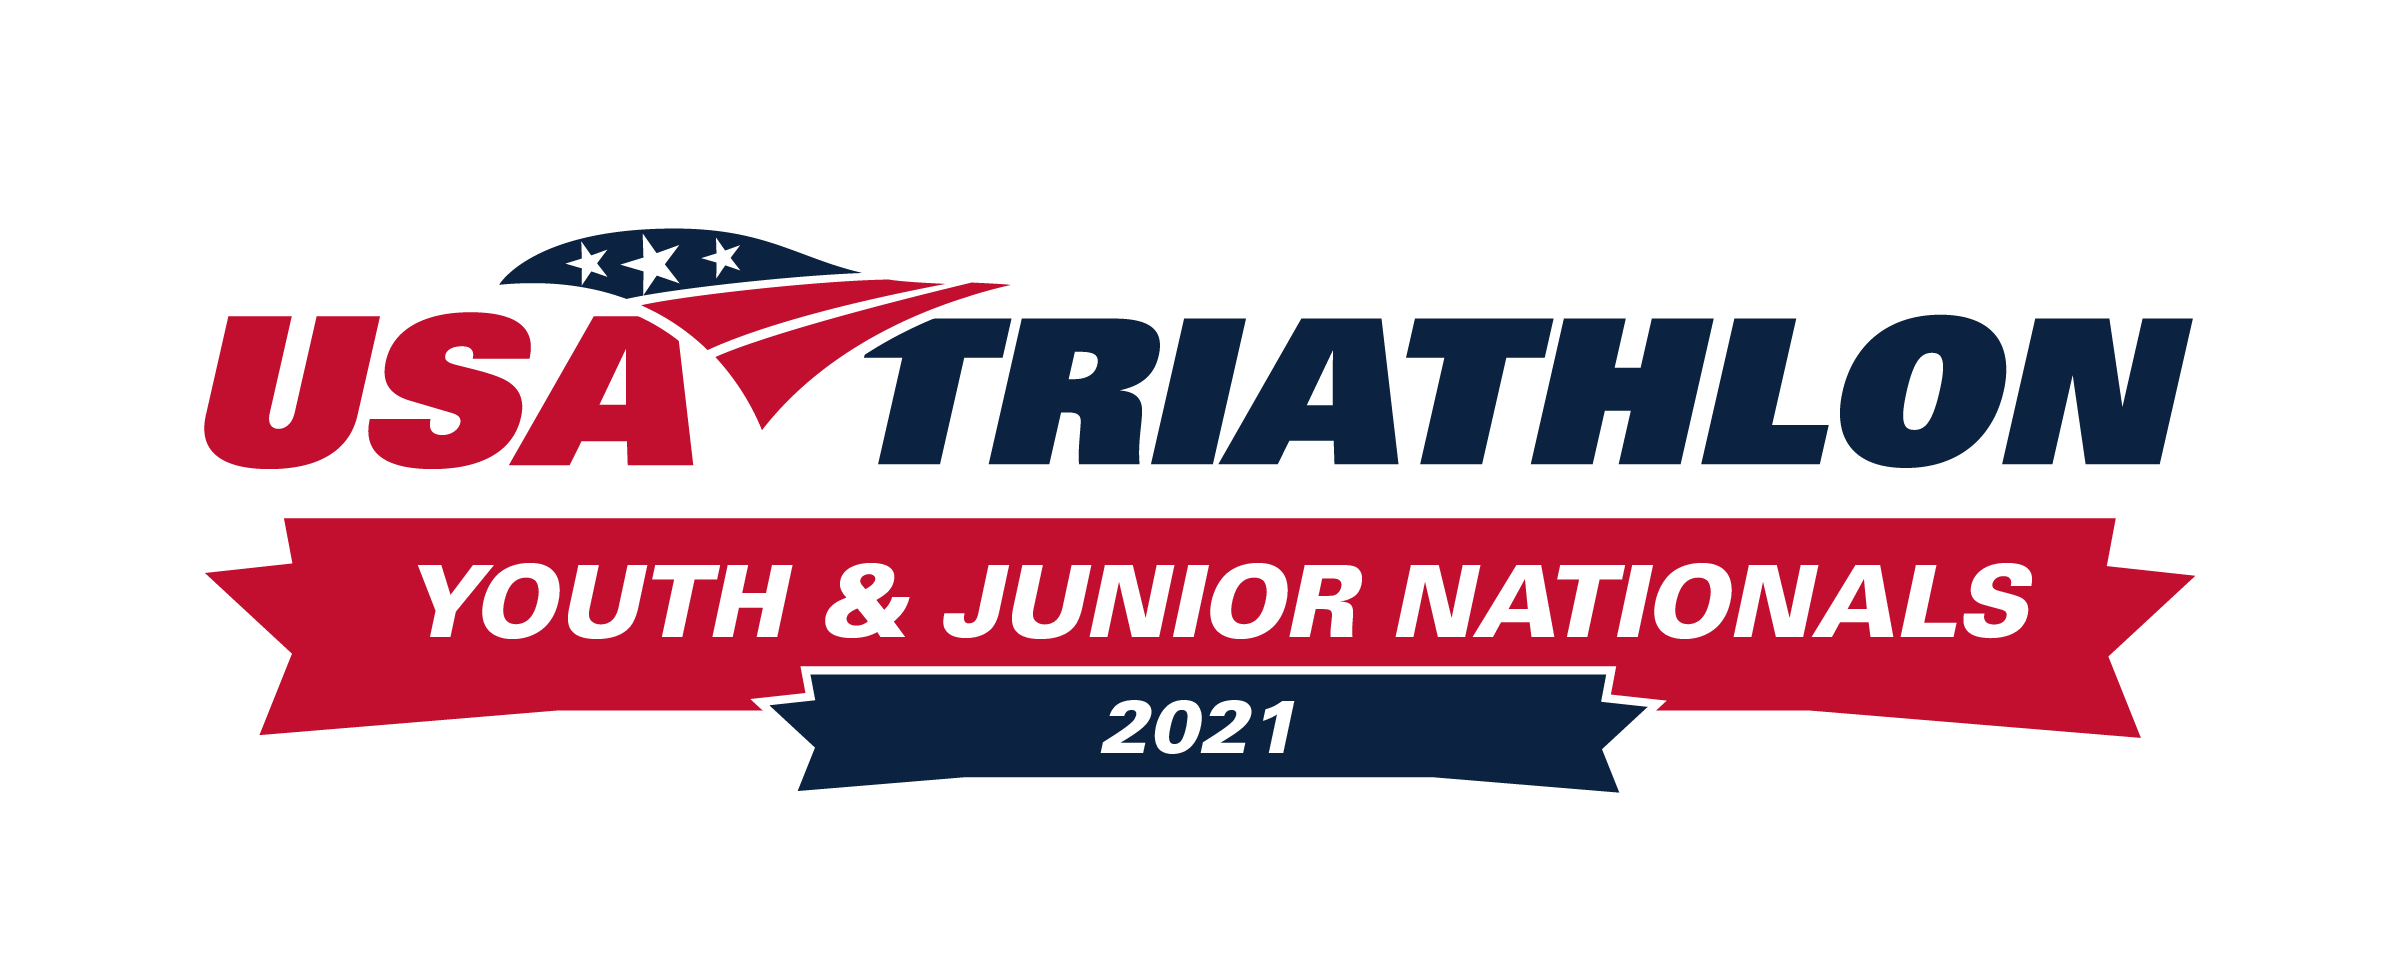 2021 Youth and Junior Nationals - Youth Age Groups 7-18